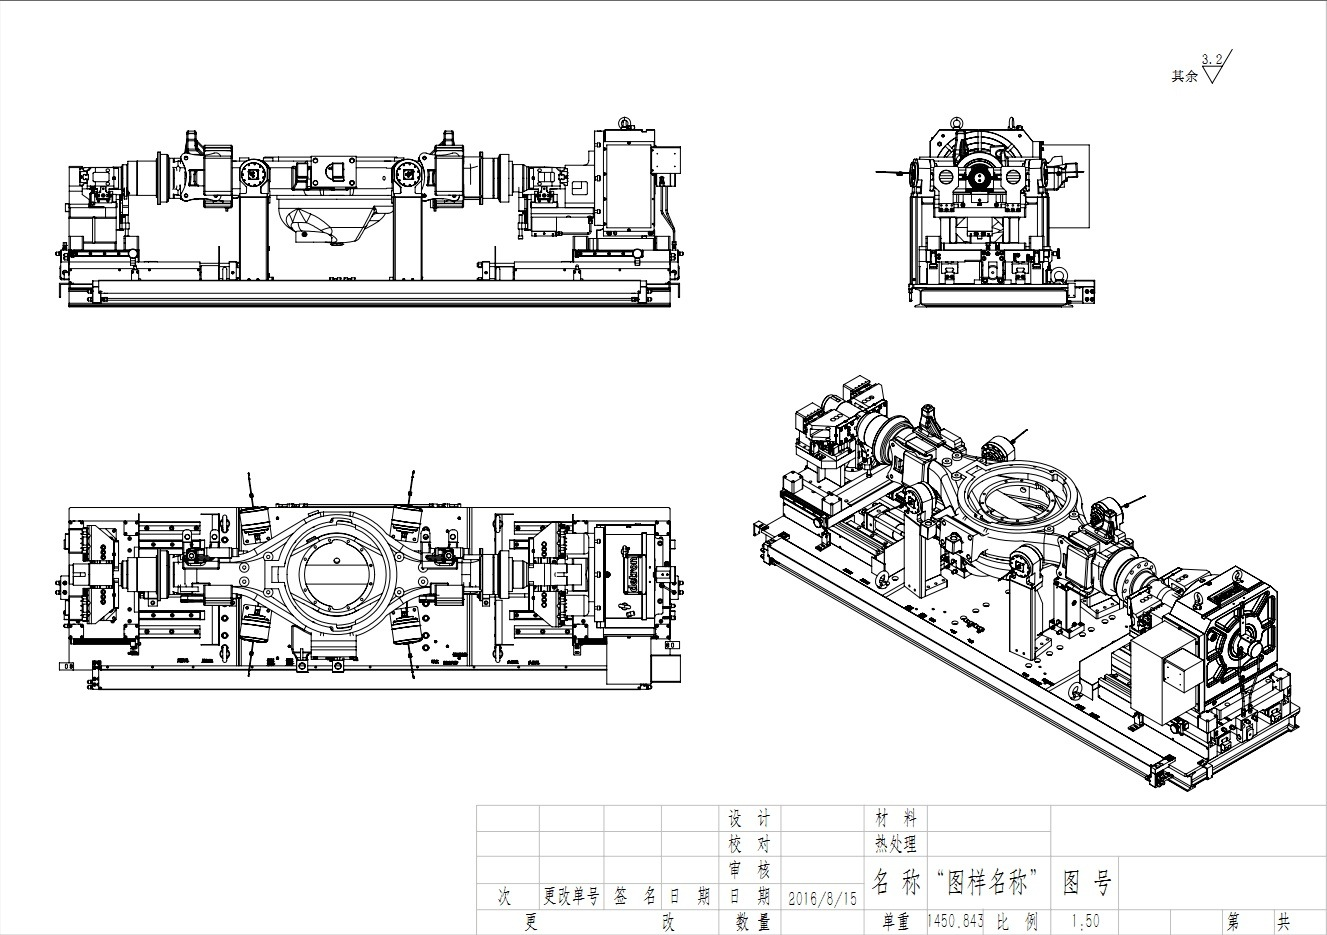 Hydraulic Workholding for Heavy Commercial Vehicle Axle